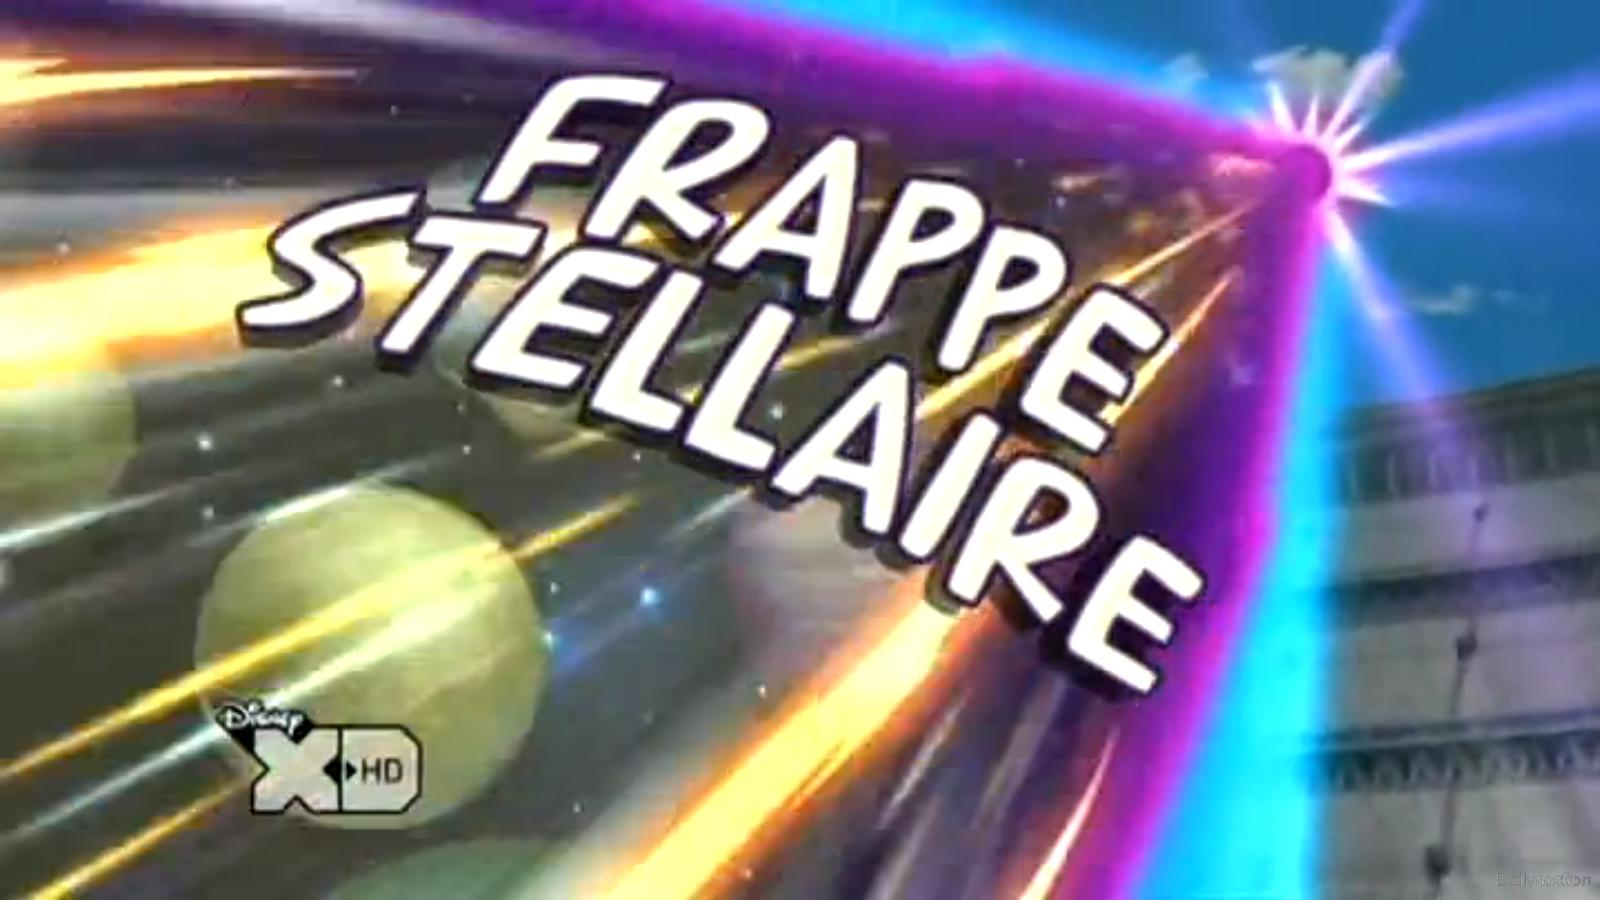 Frappe Stellaire